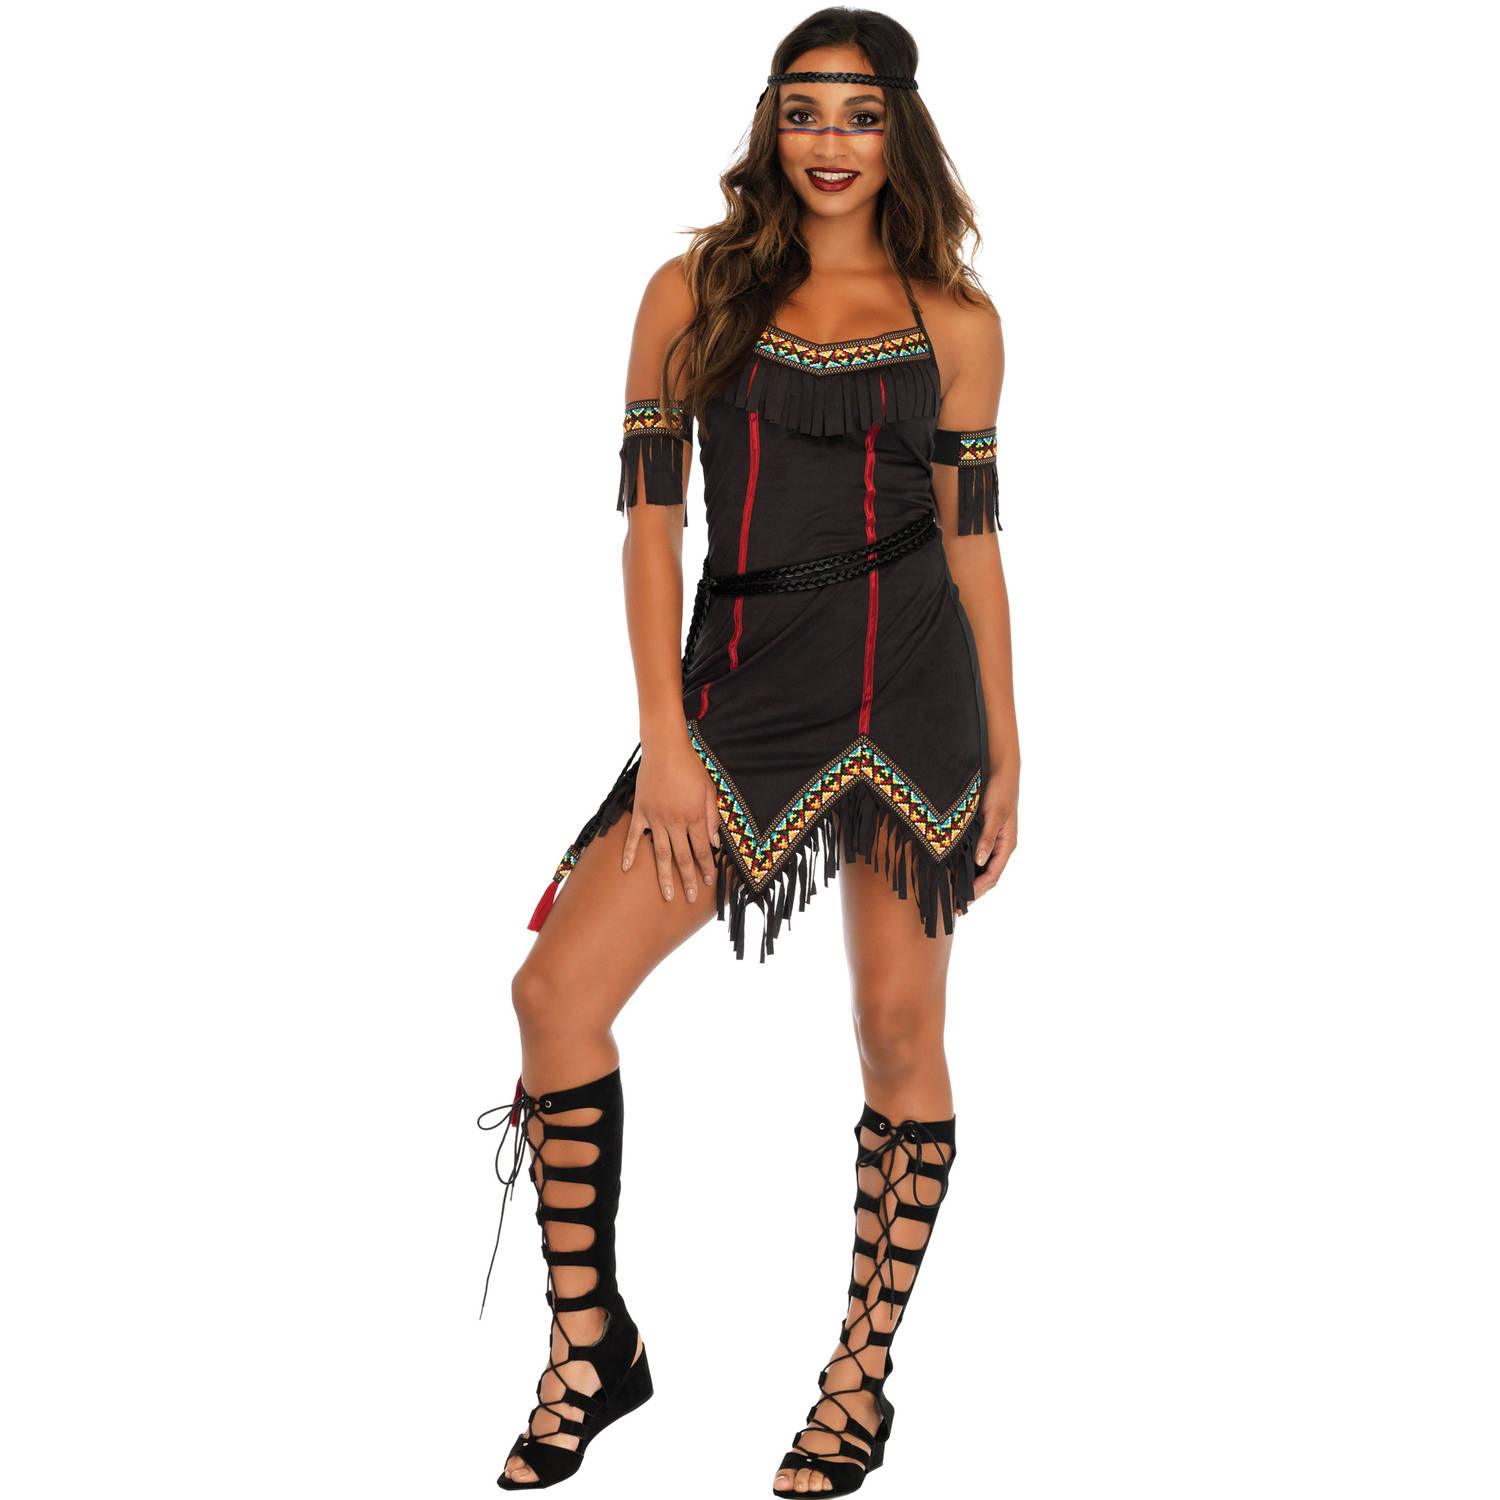 Tiger Lily Costume - Large - Dress Size 12-14